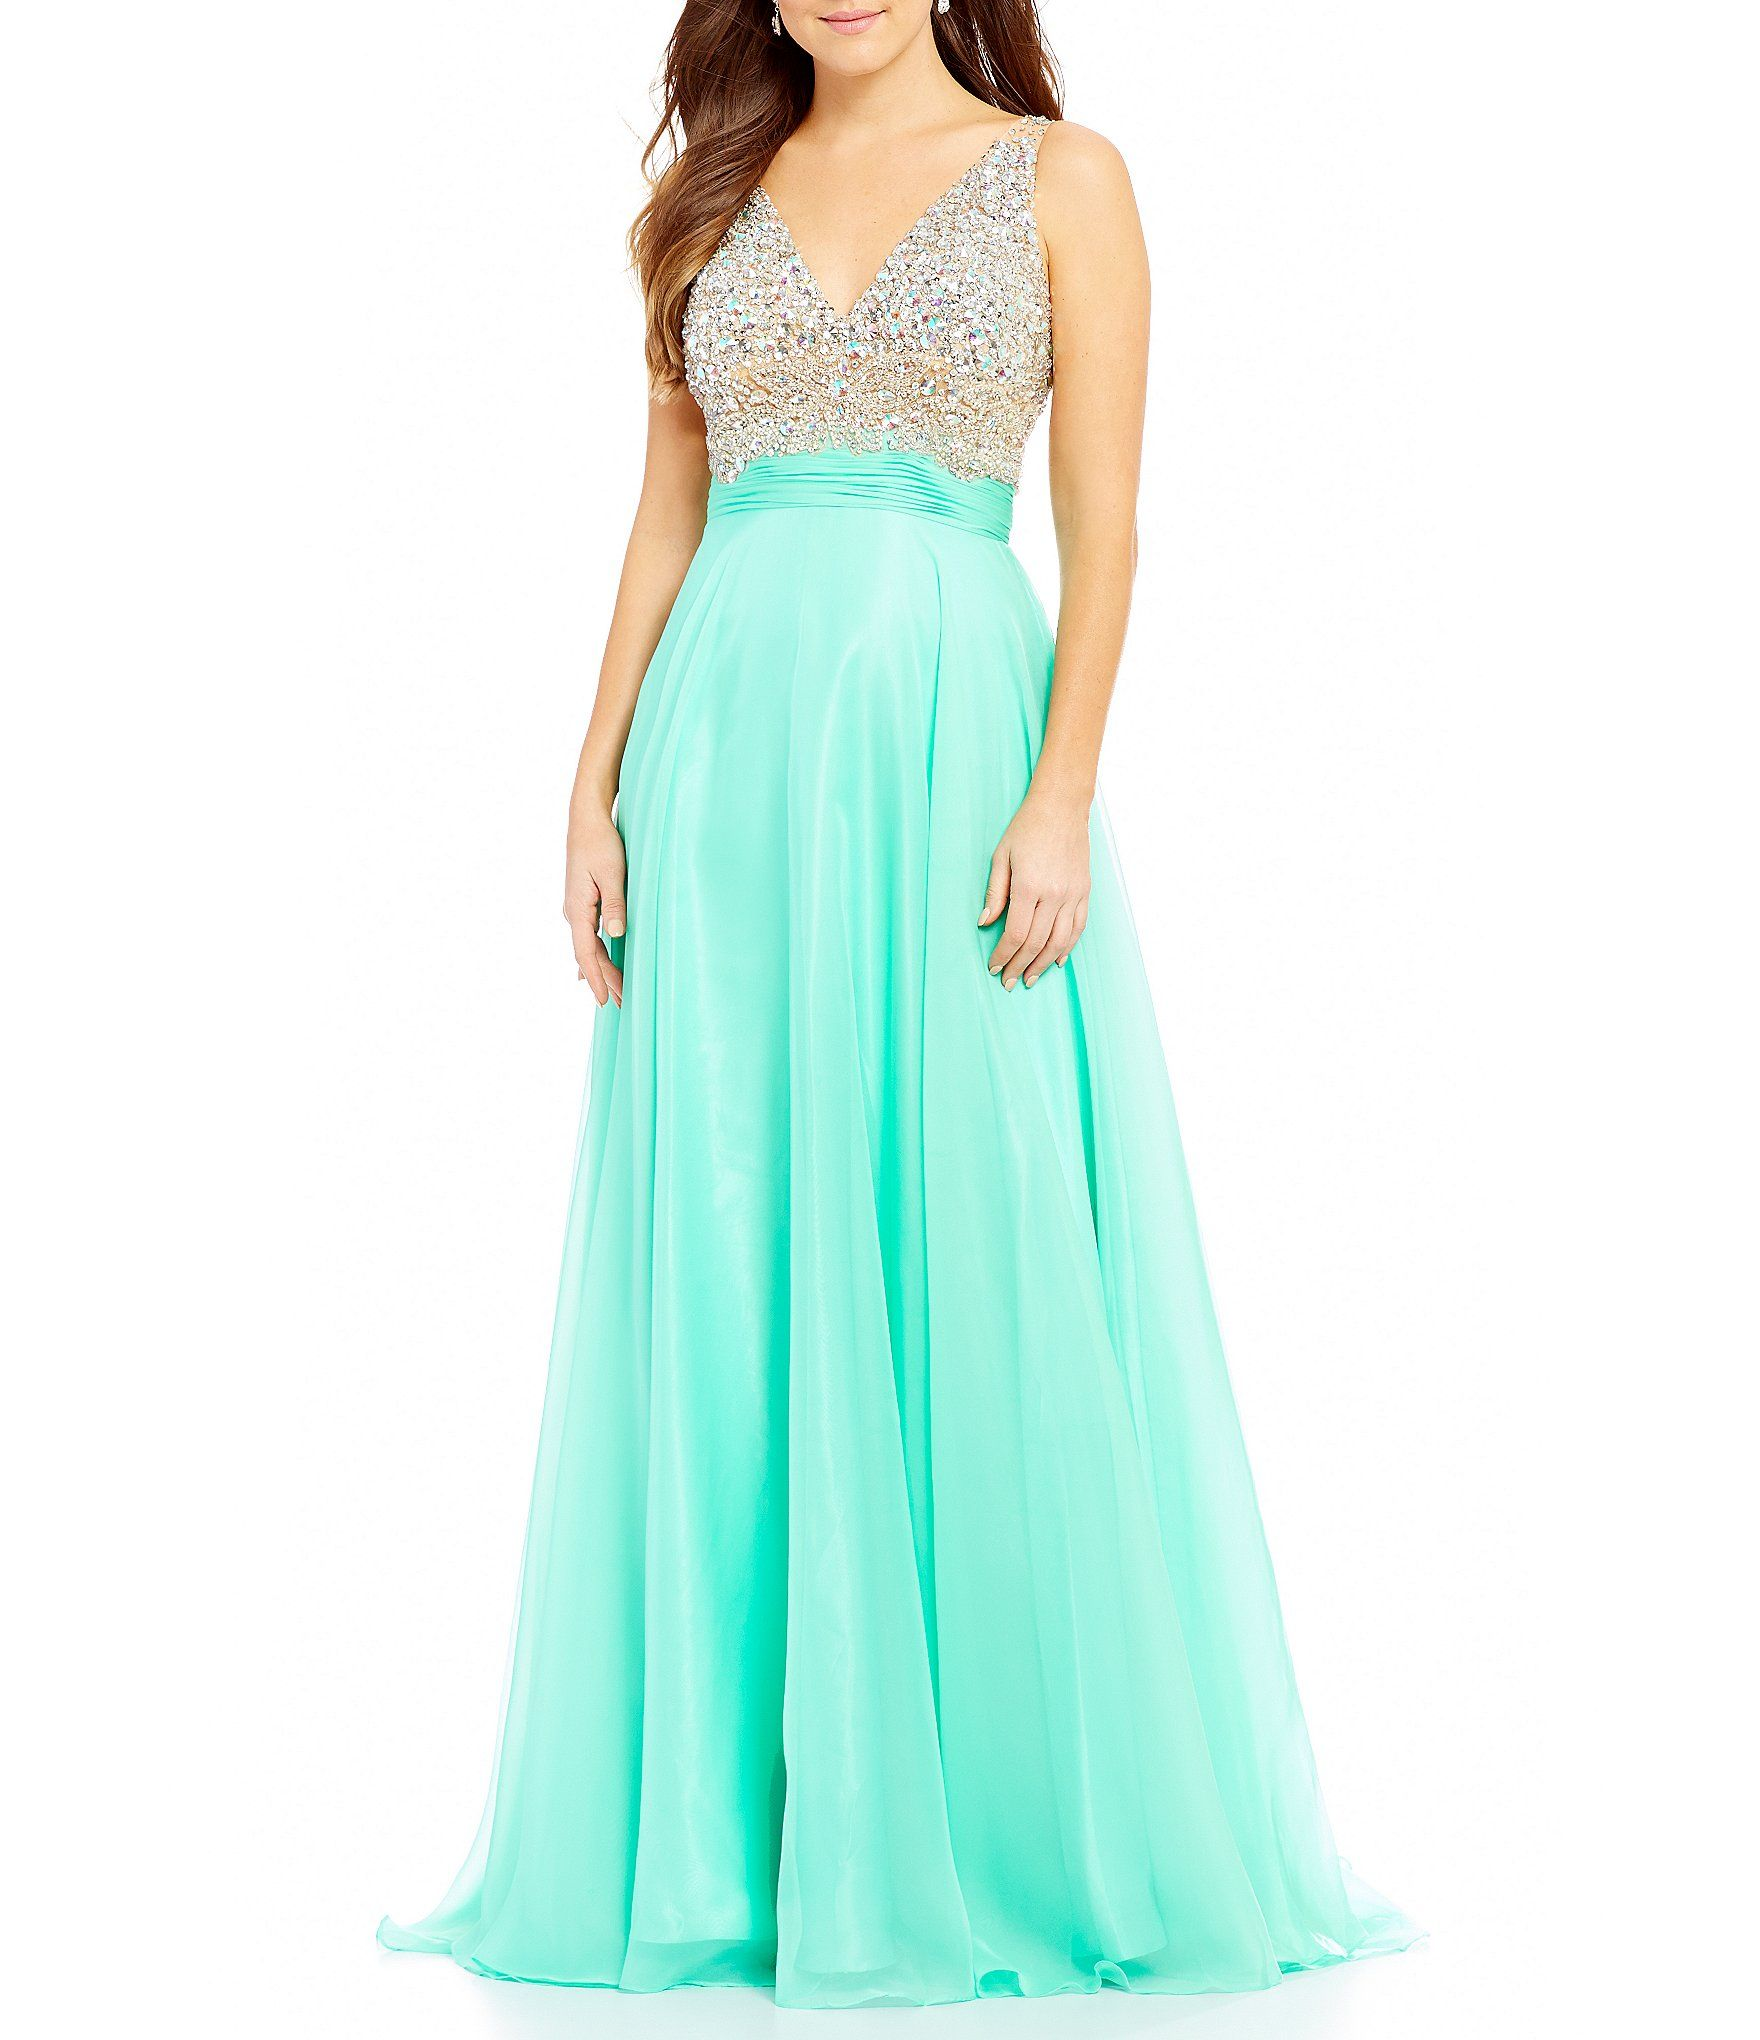 33037b63750 ... for the perfect long prom or formal dress. Coya Collection Bead  Encrusted Bodice VBack Gown  Dillards